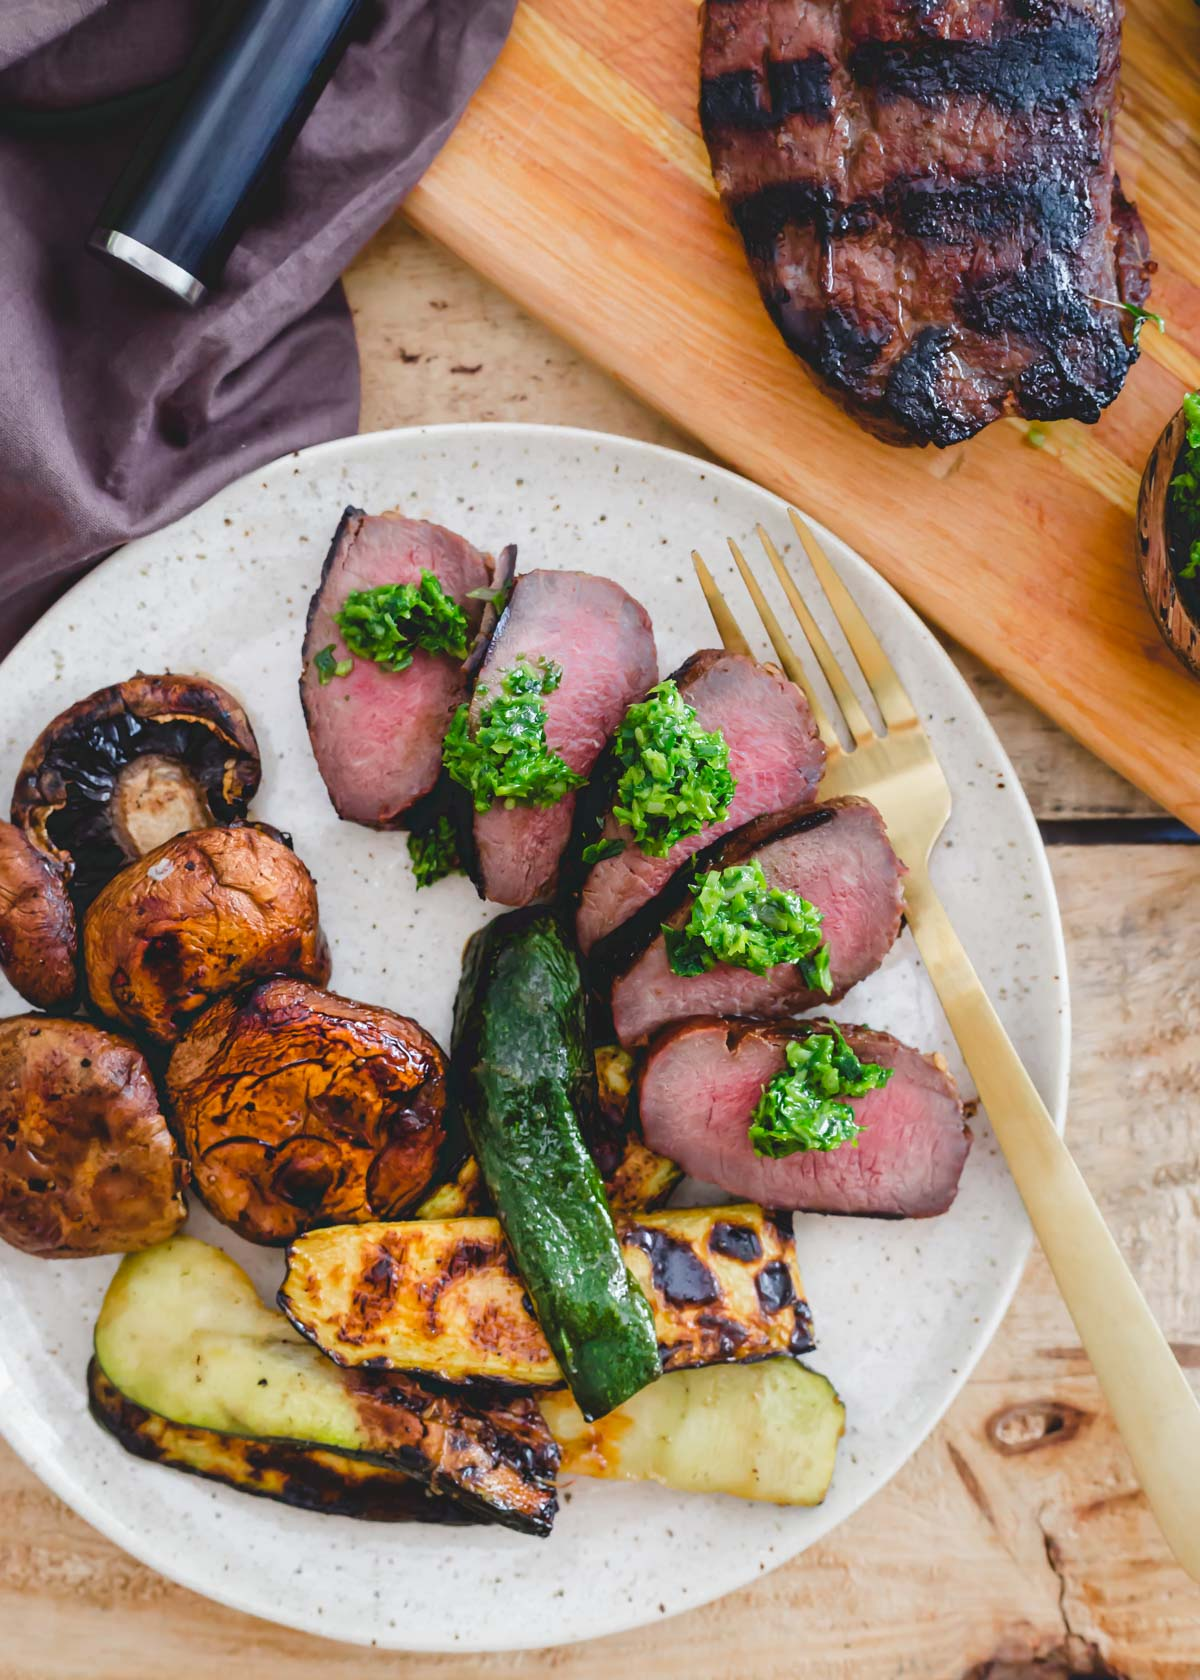 Grilled venison backstrap sliced on a plate with grilled vegetables on the side.